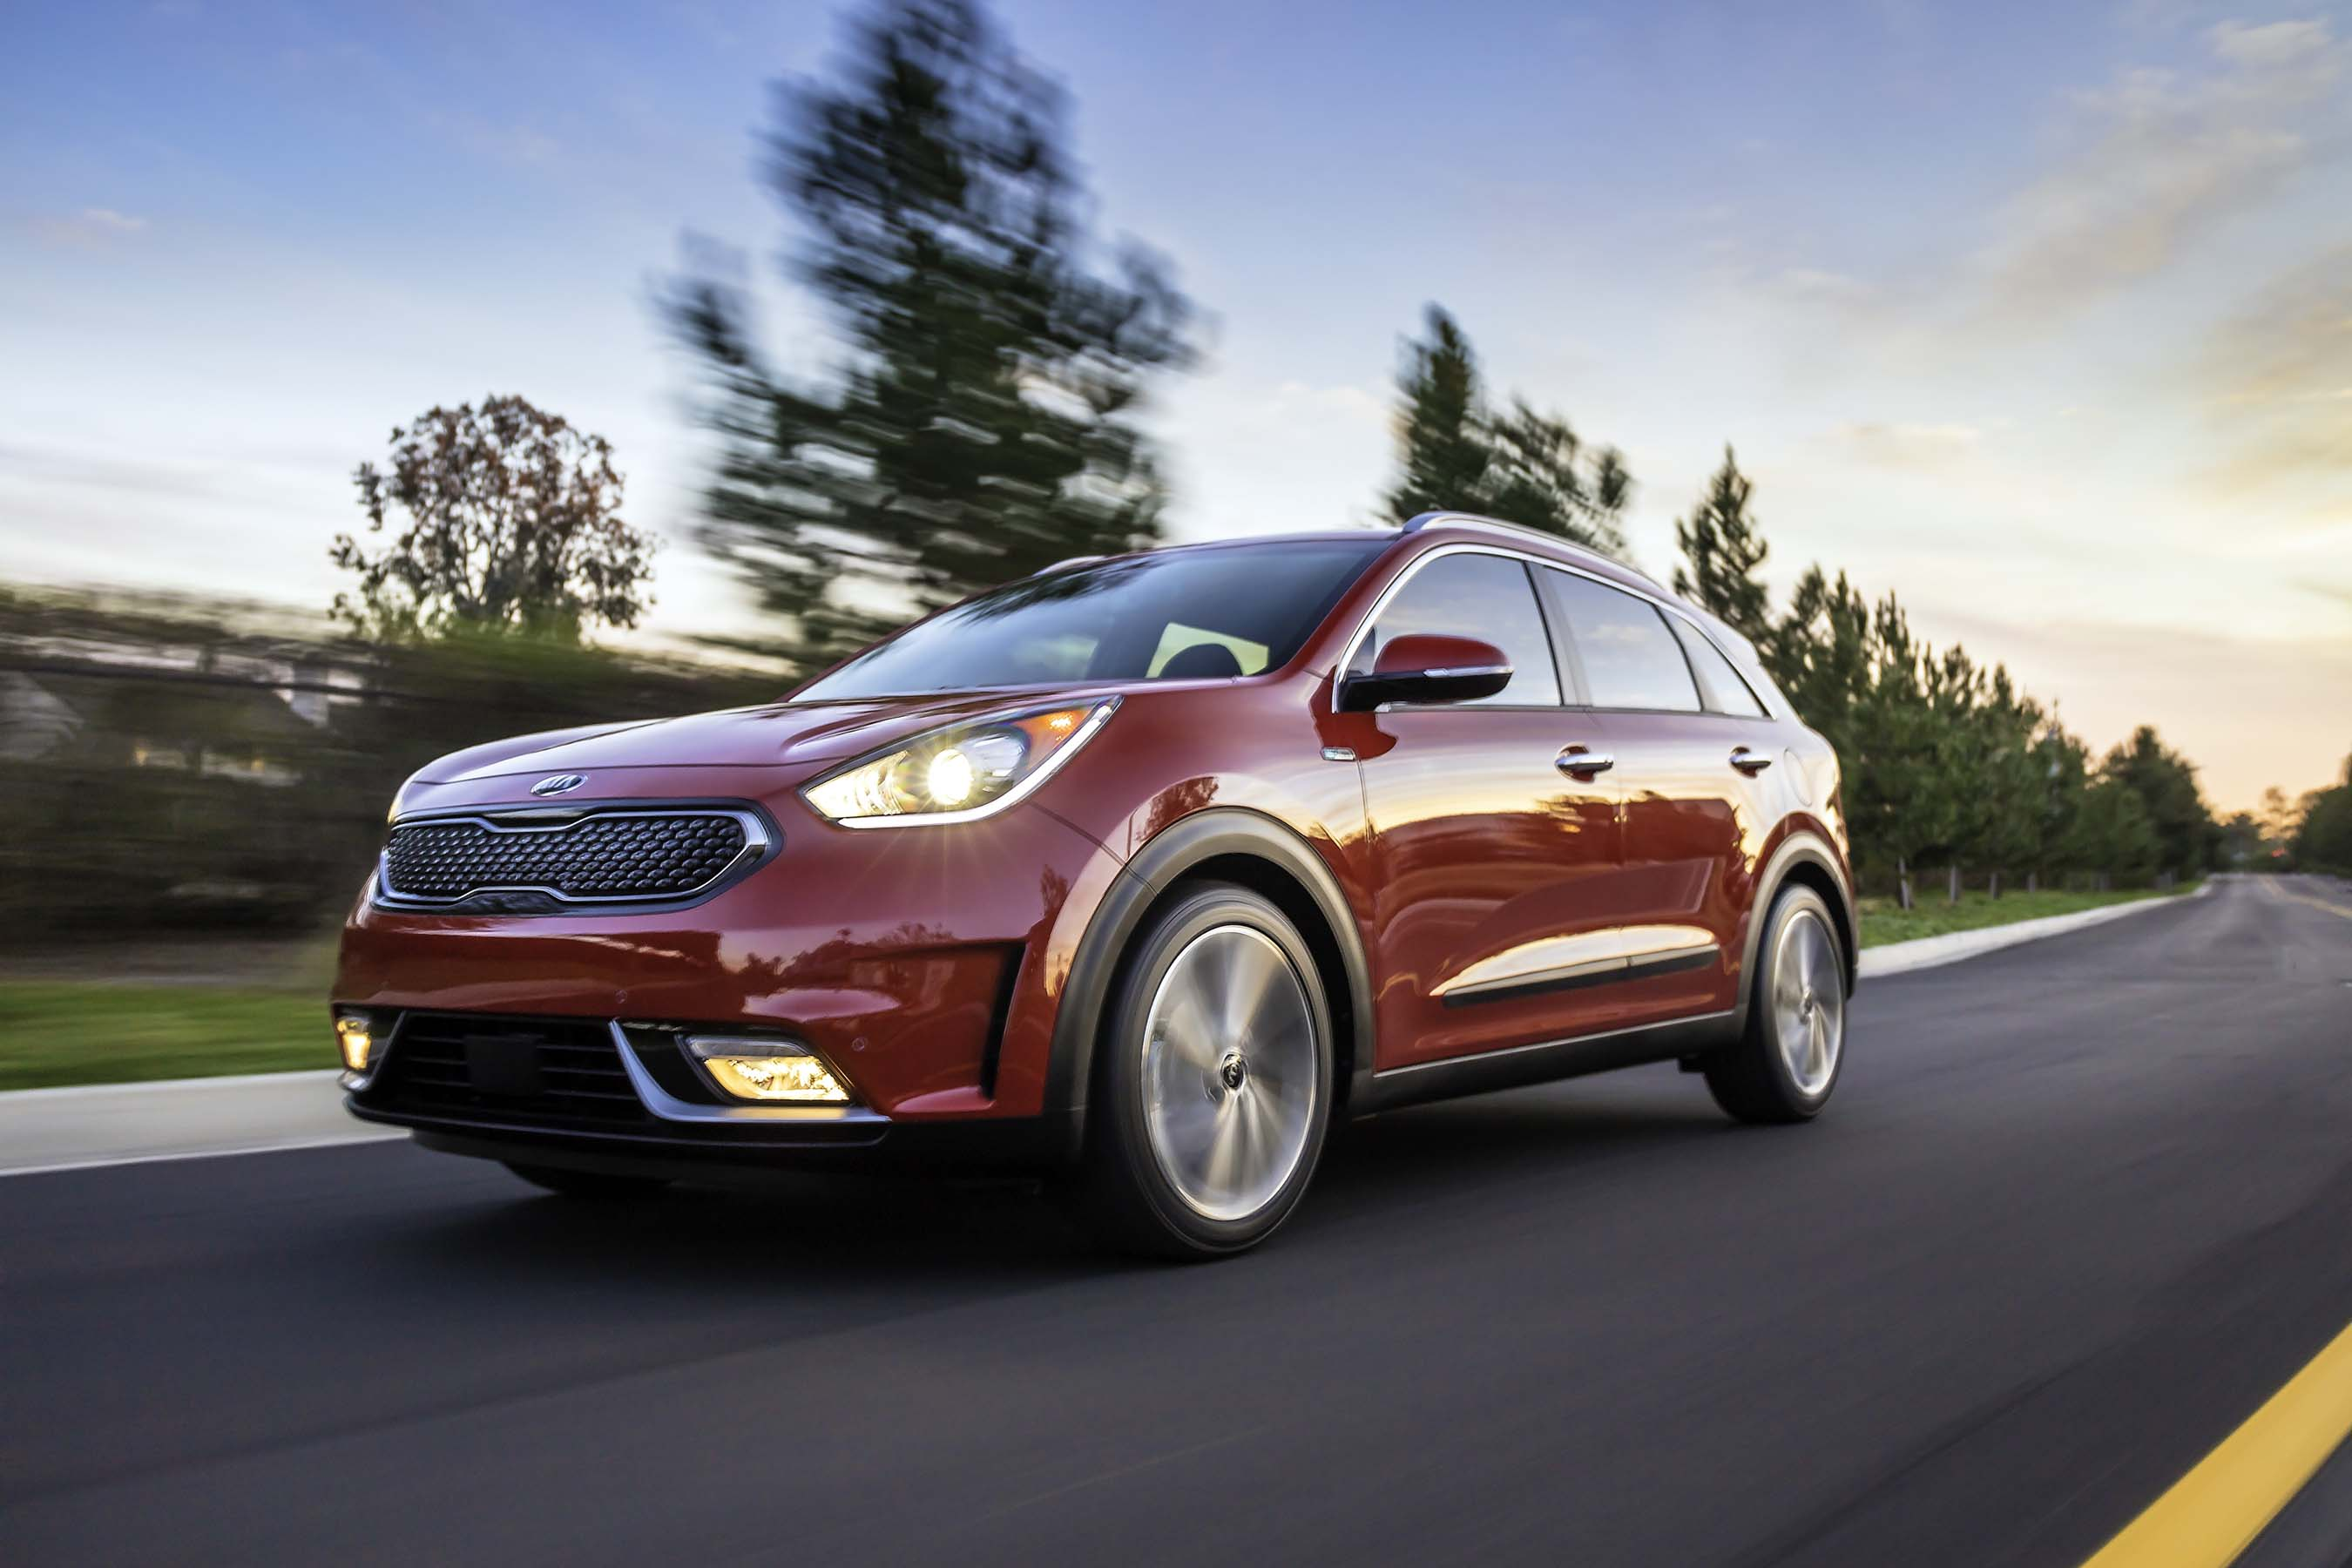 niro hybrid kia utility vehicle